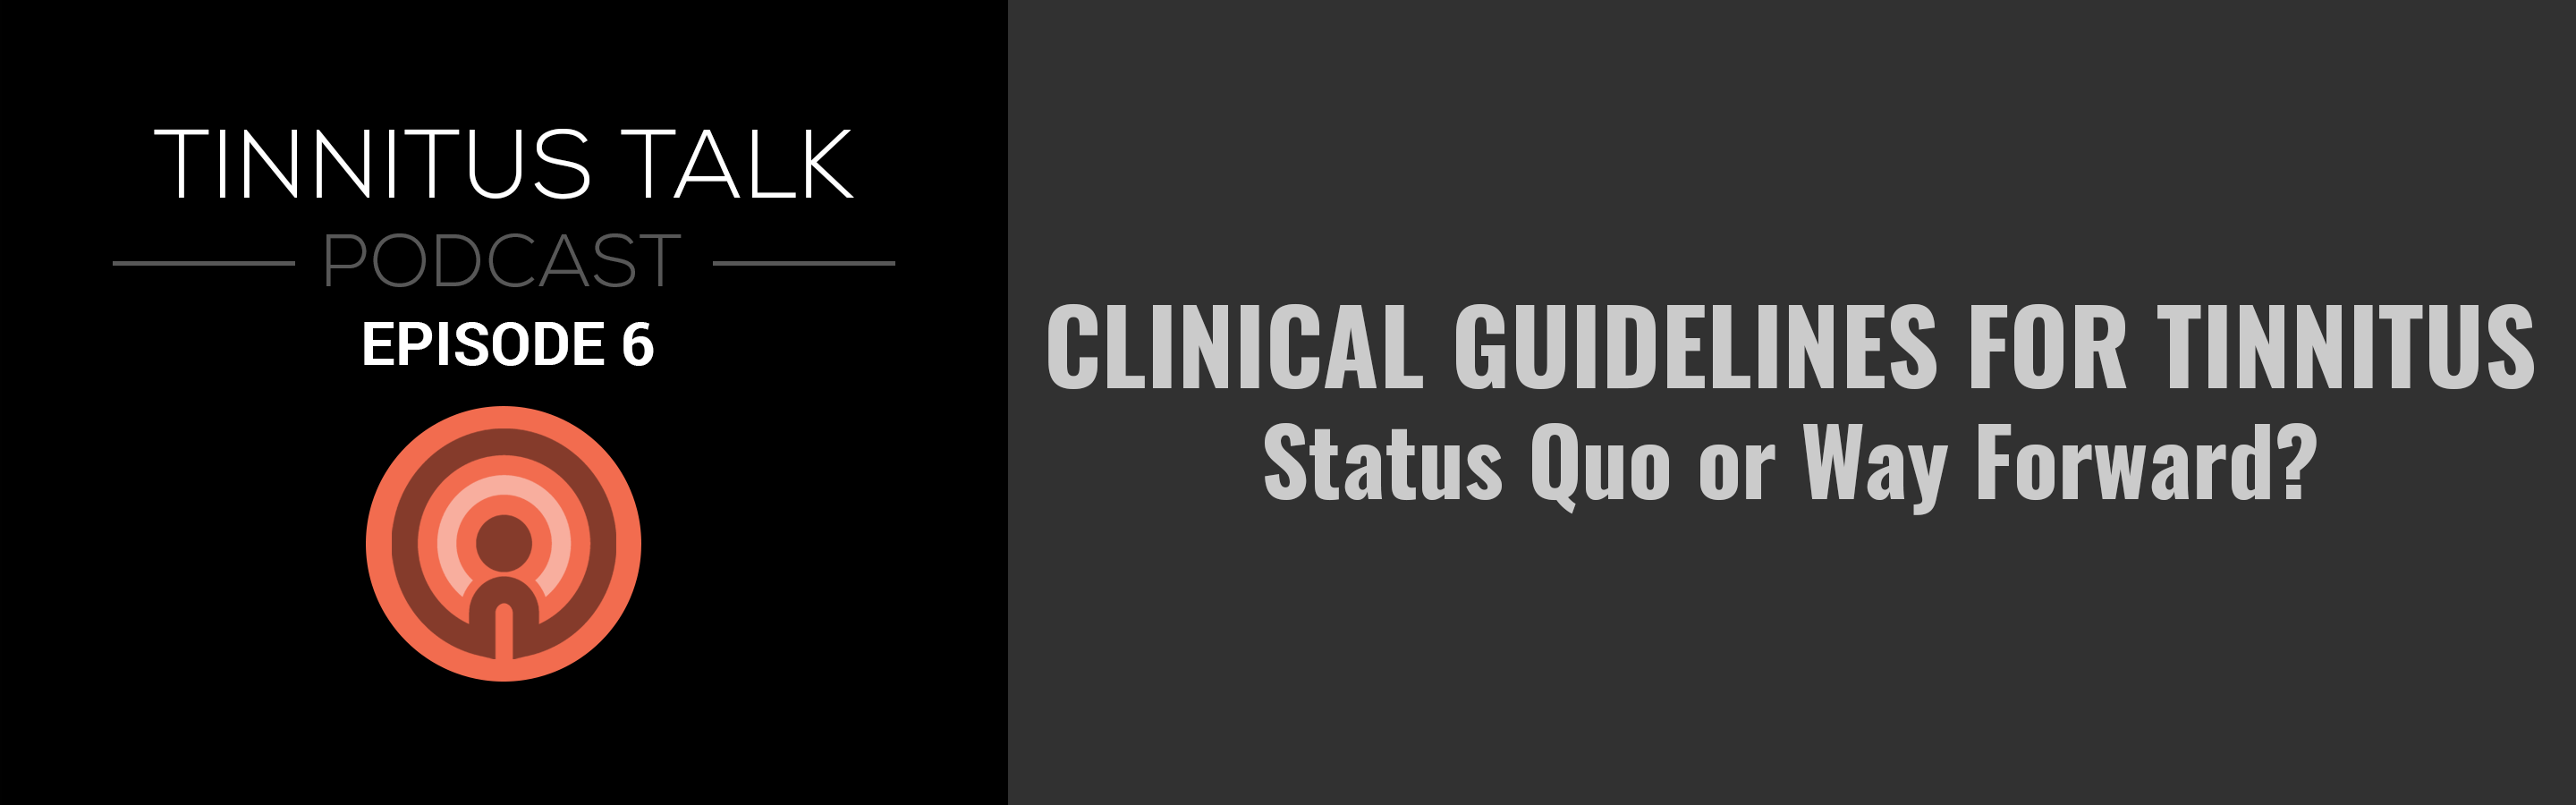 tinnitus-talk-podcast-episode-6-clinical-guidelines.png